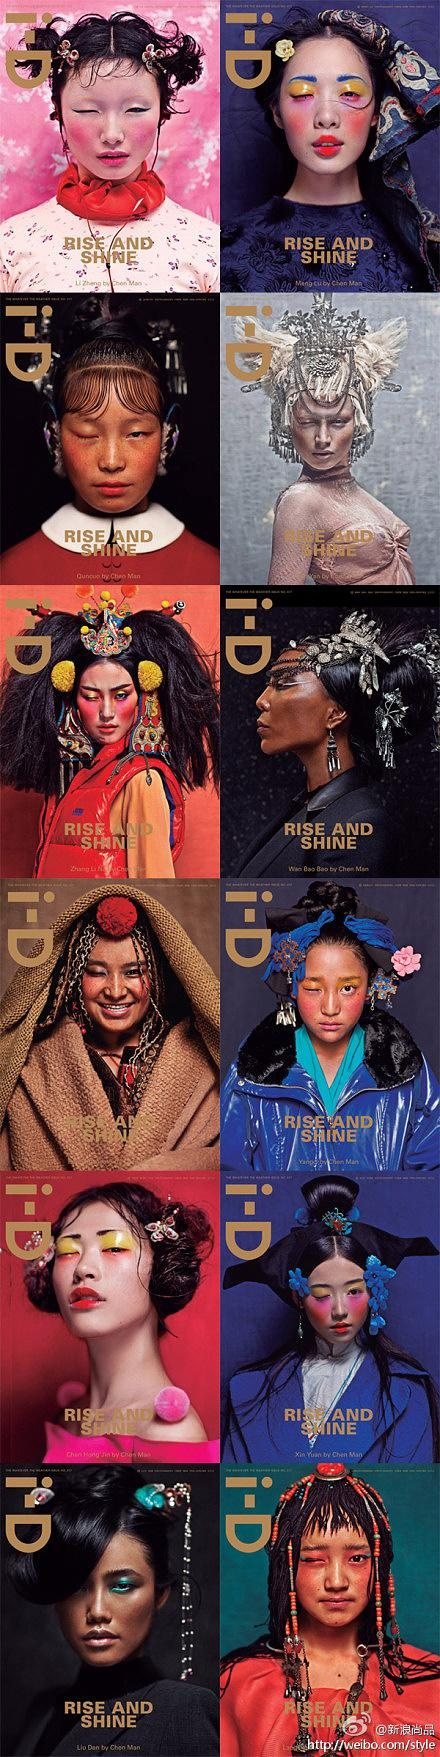 New Chinese look by Chen Man for I-D Magazine